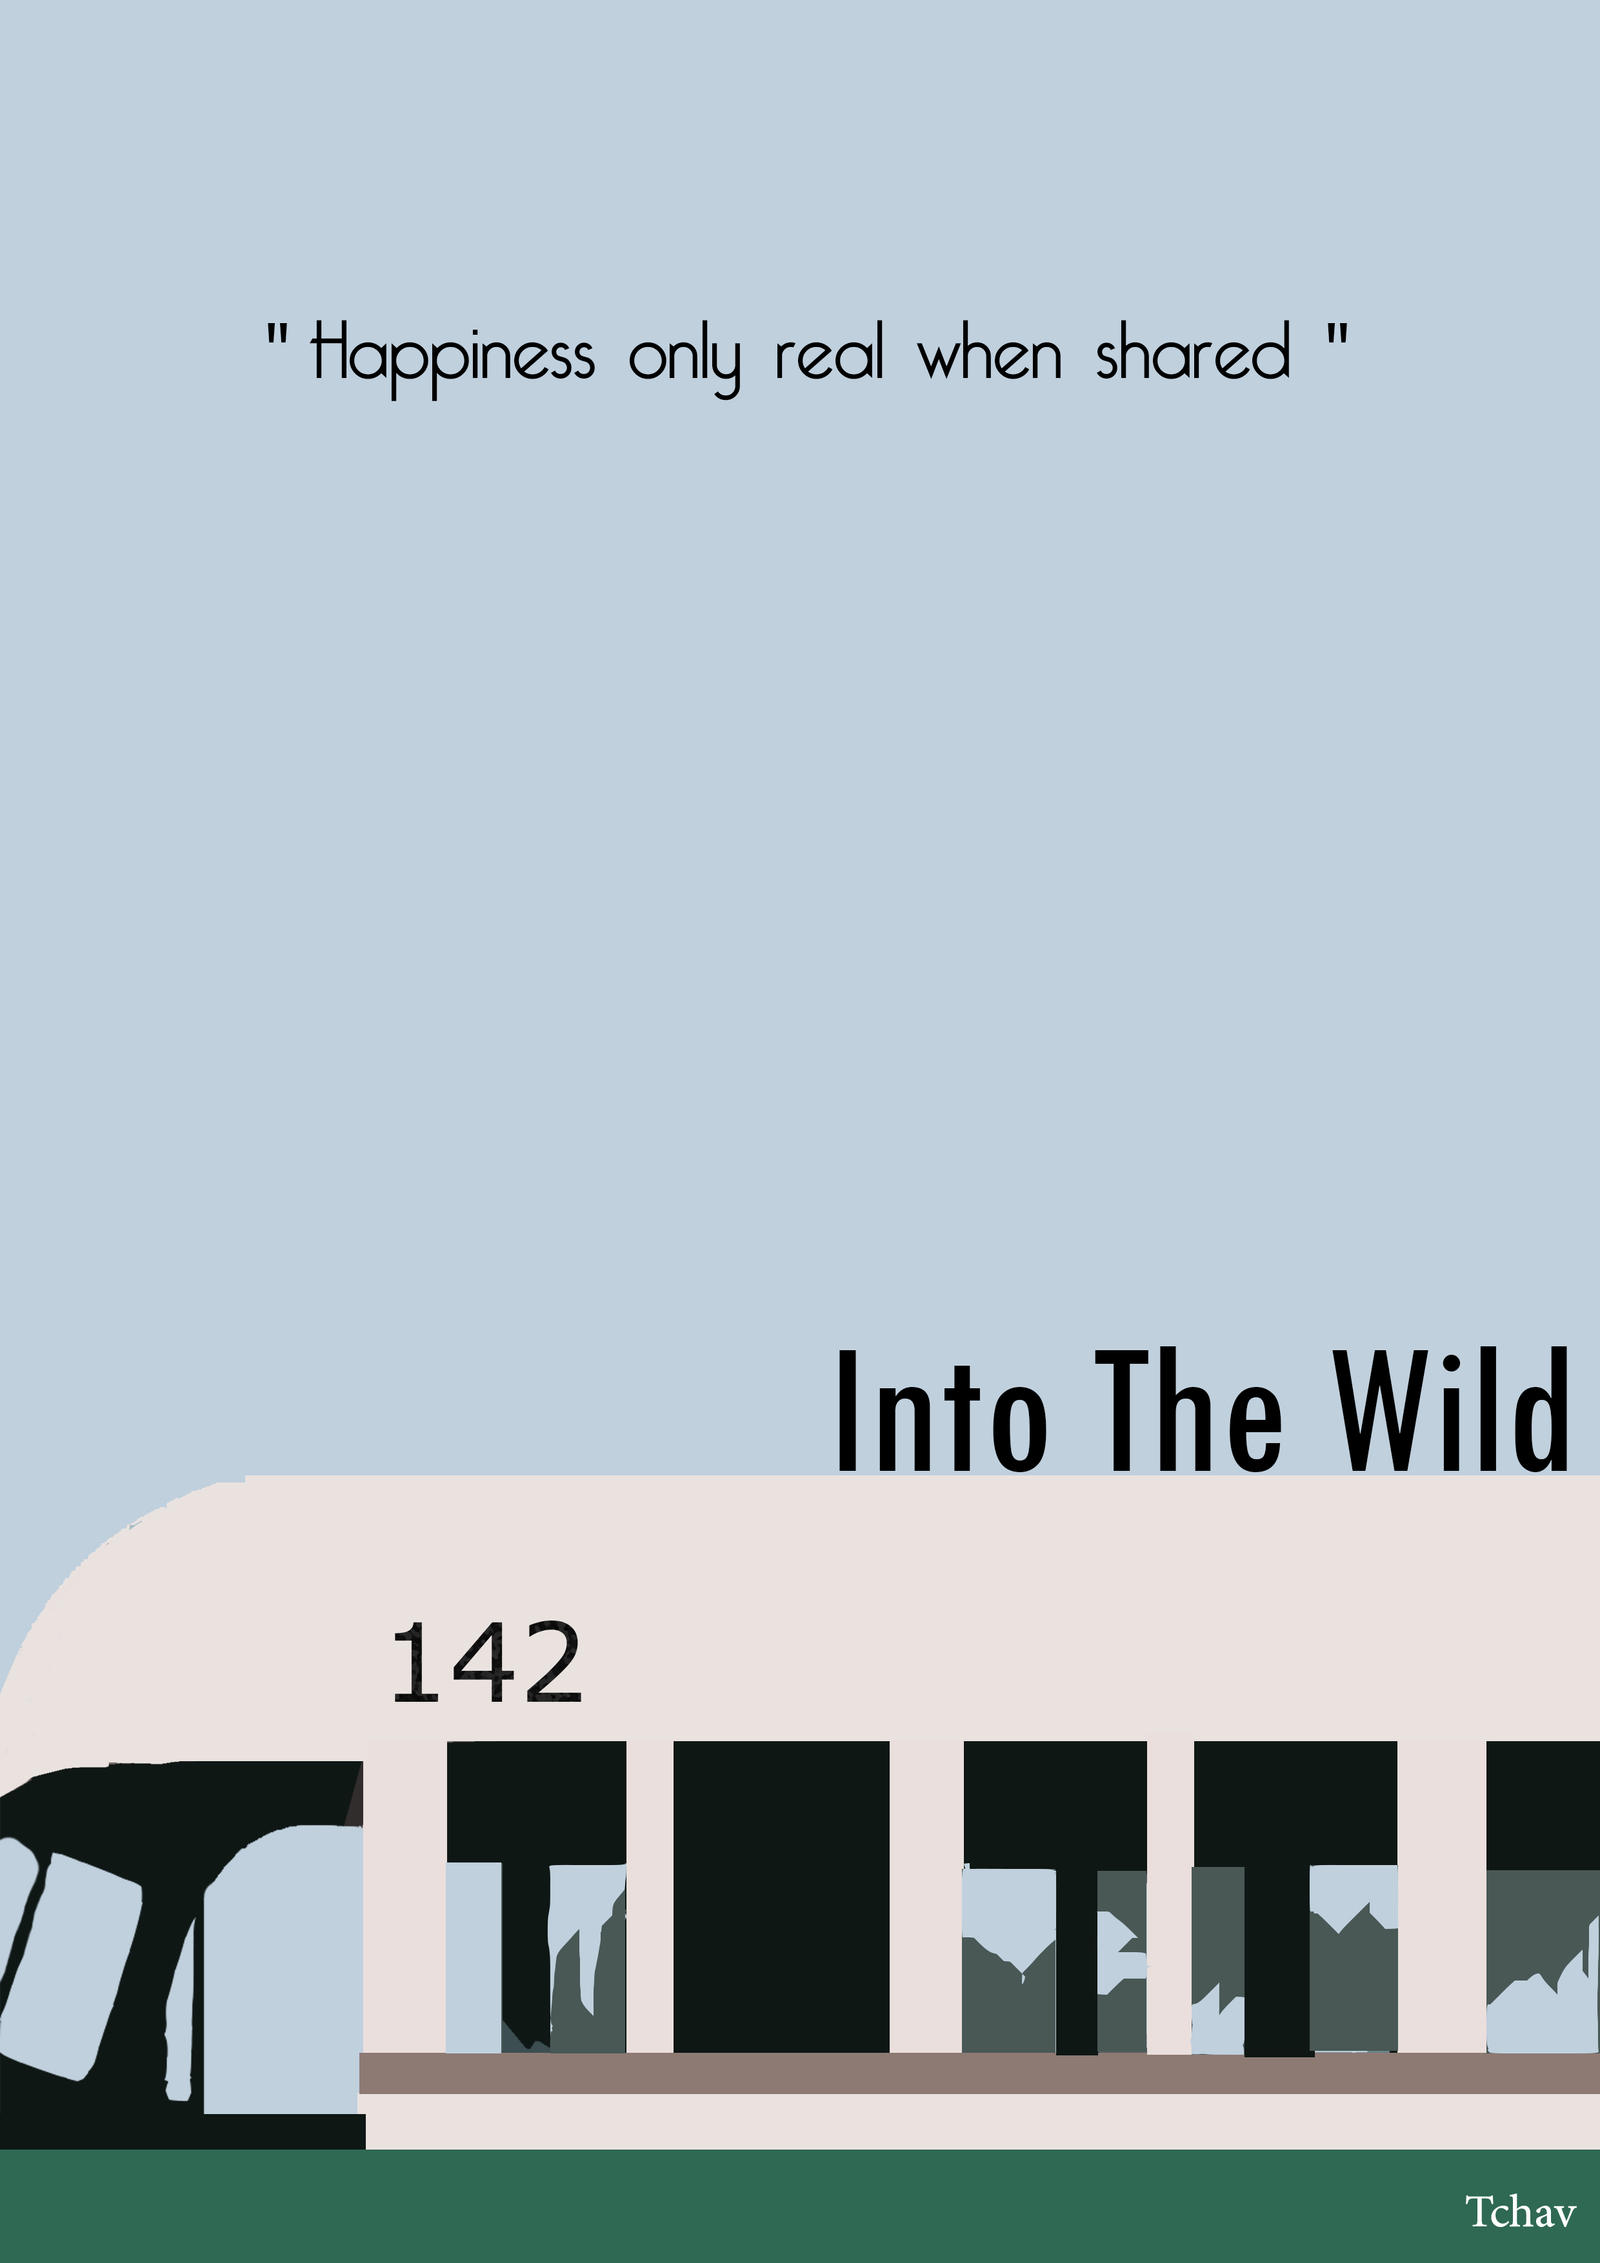 Into The Wild Minimalist Poster by Tchav on DeviantArt